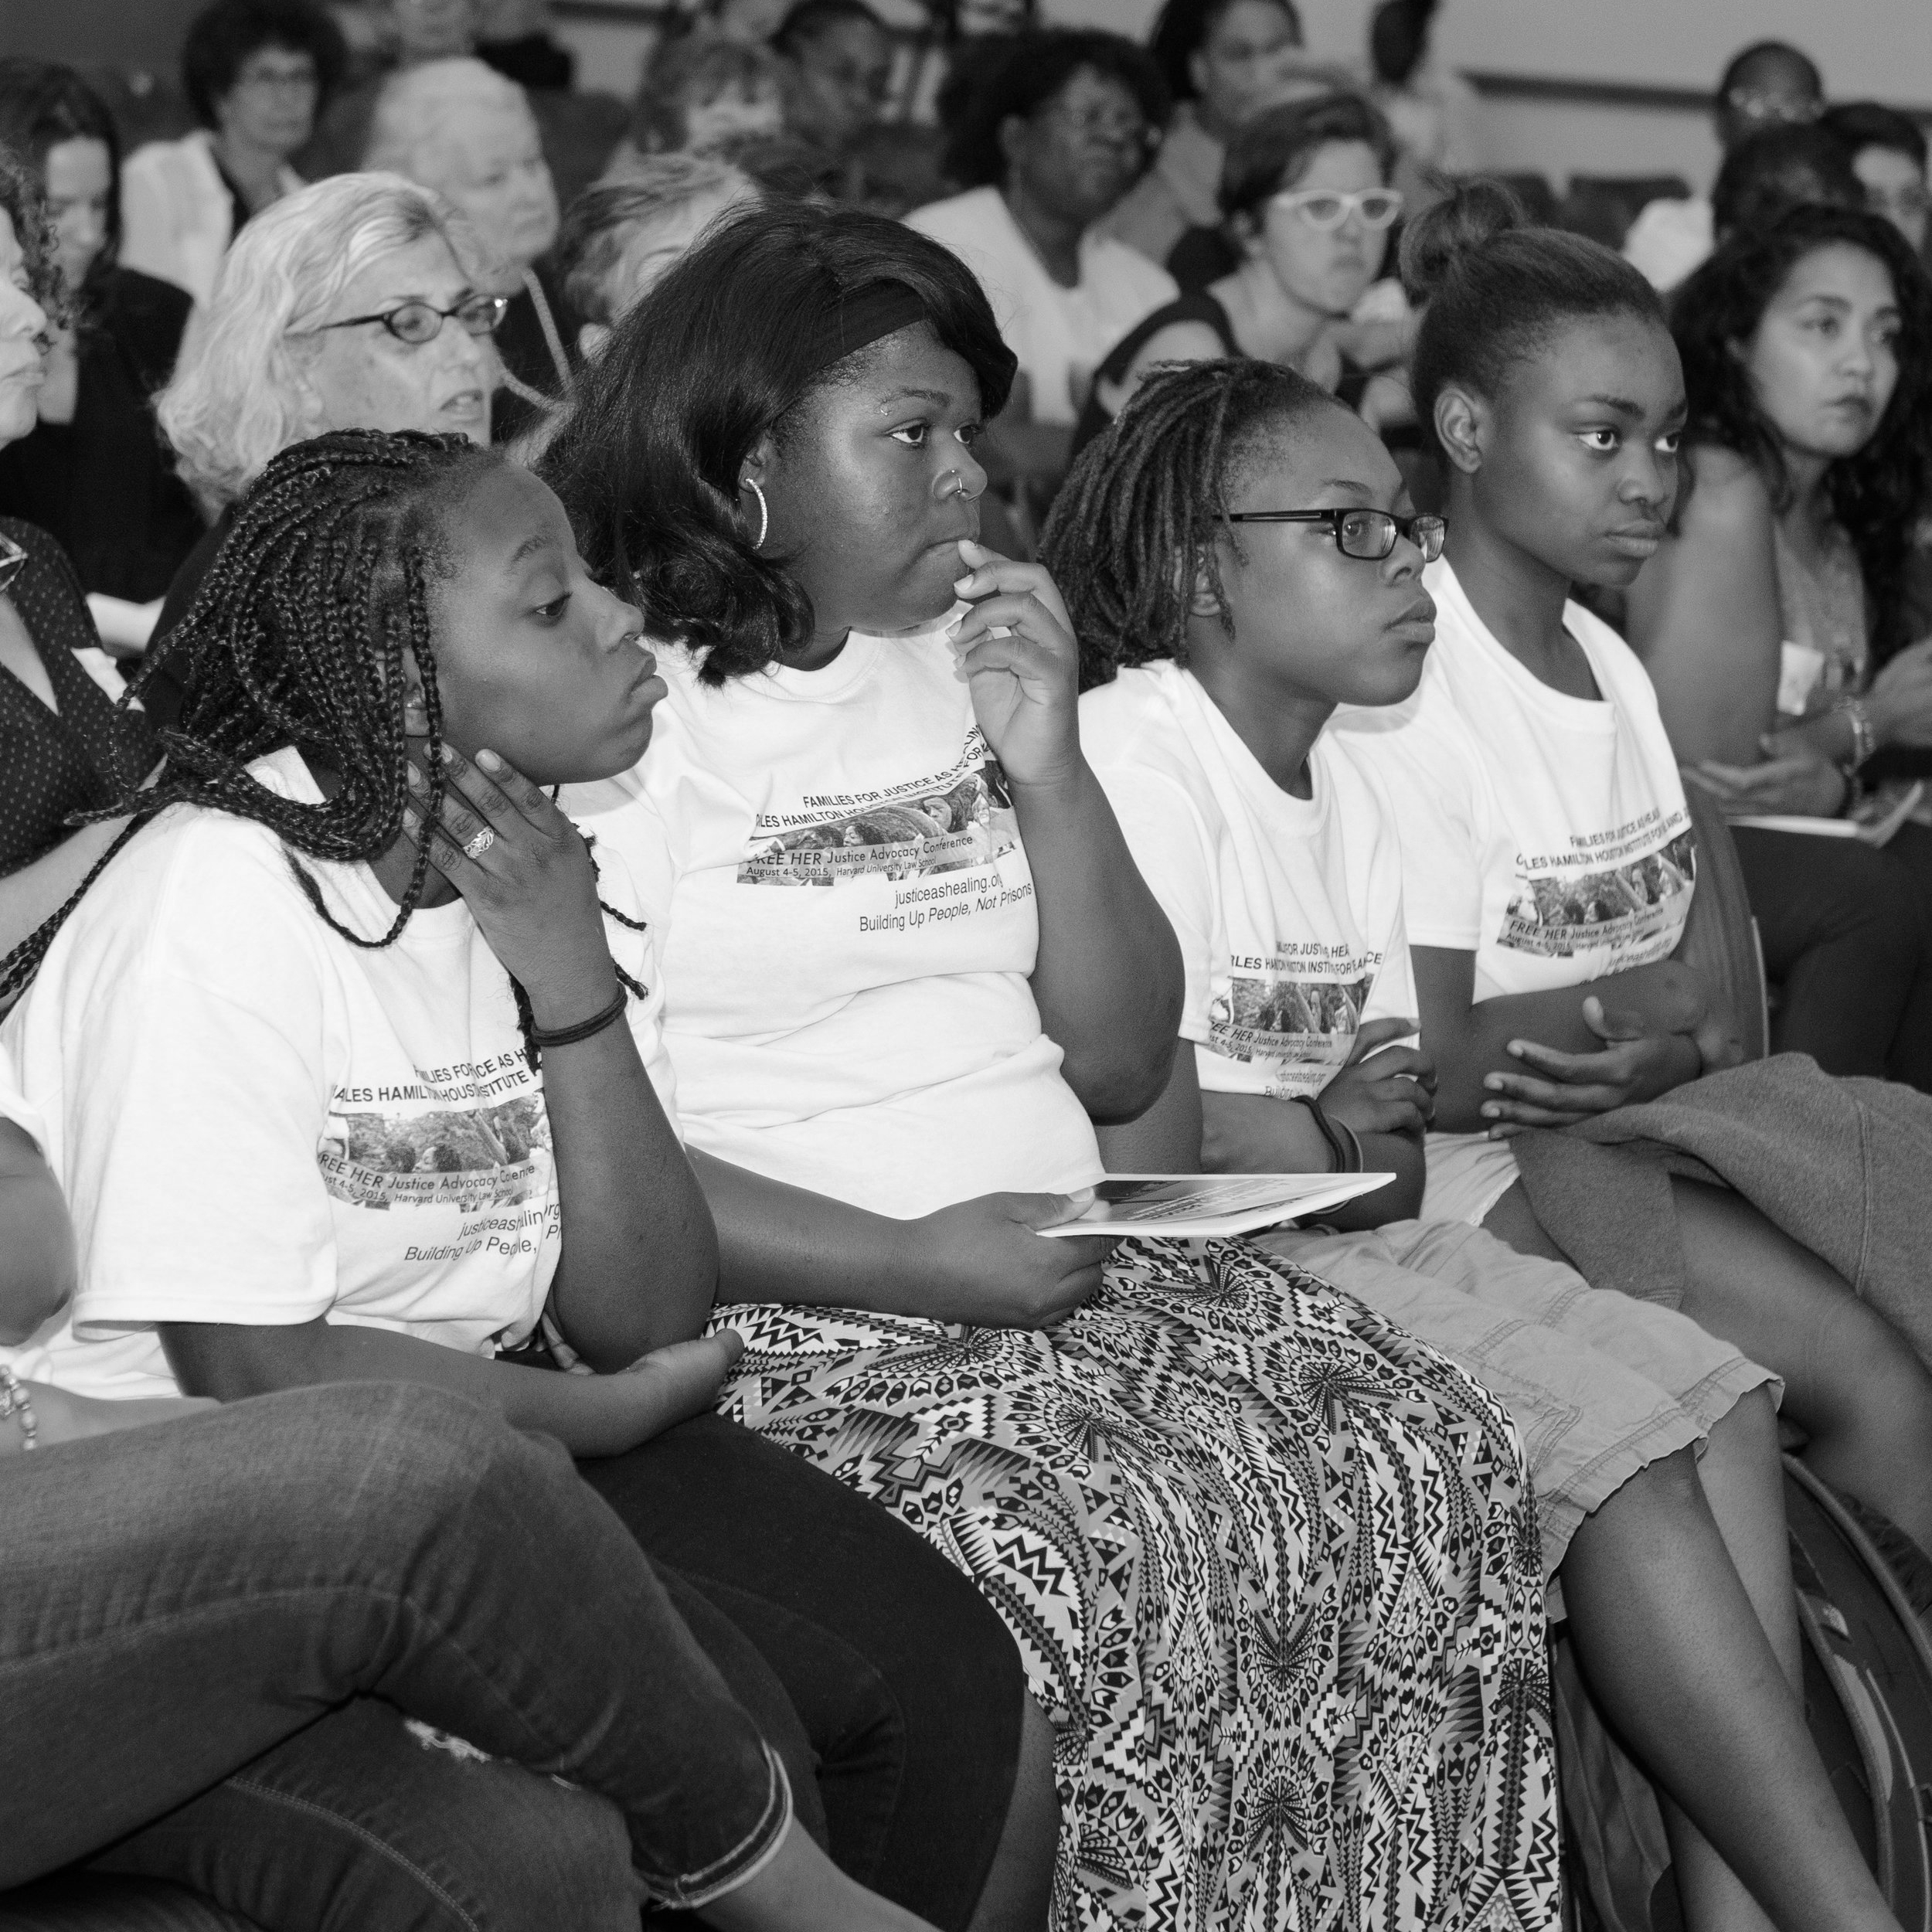 FREE HER Conference - 2015 CampaignSU attended the FREE HER conference. This is an annual conference that brings together powerful leaders from across the country who are formerly incarcerated women, family members of the incarcerated, and grassroots organizers.